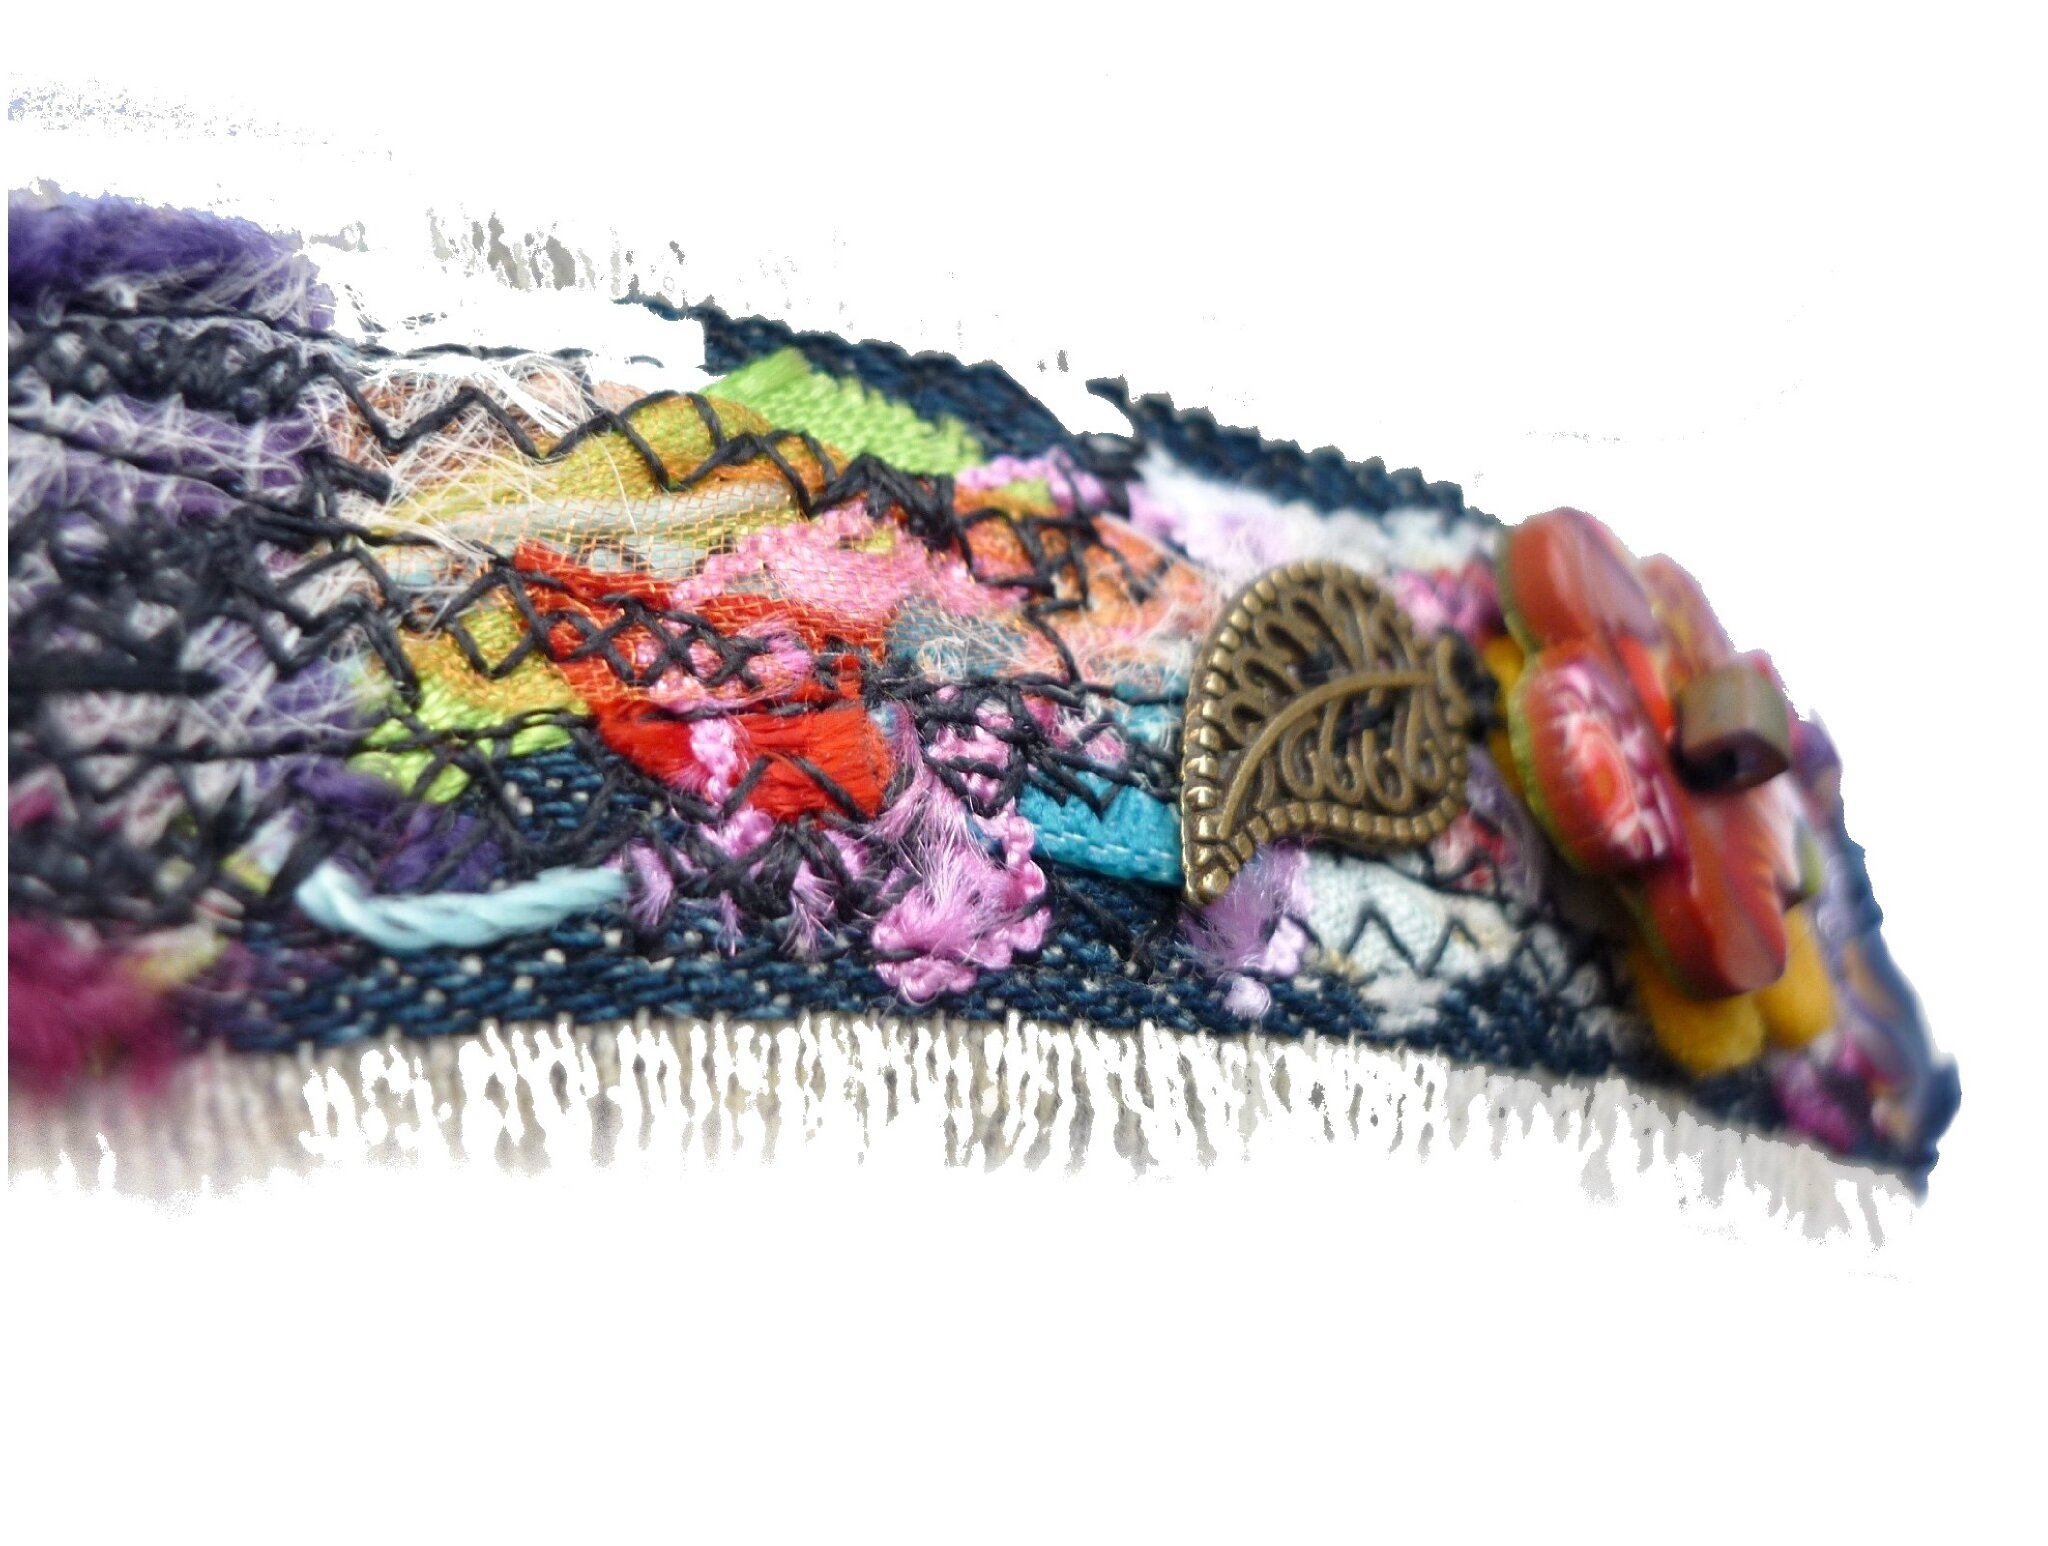 barrette textile polymere_chifonie 2014